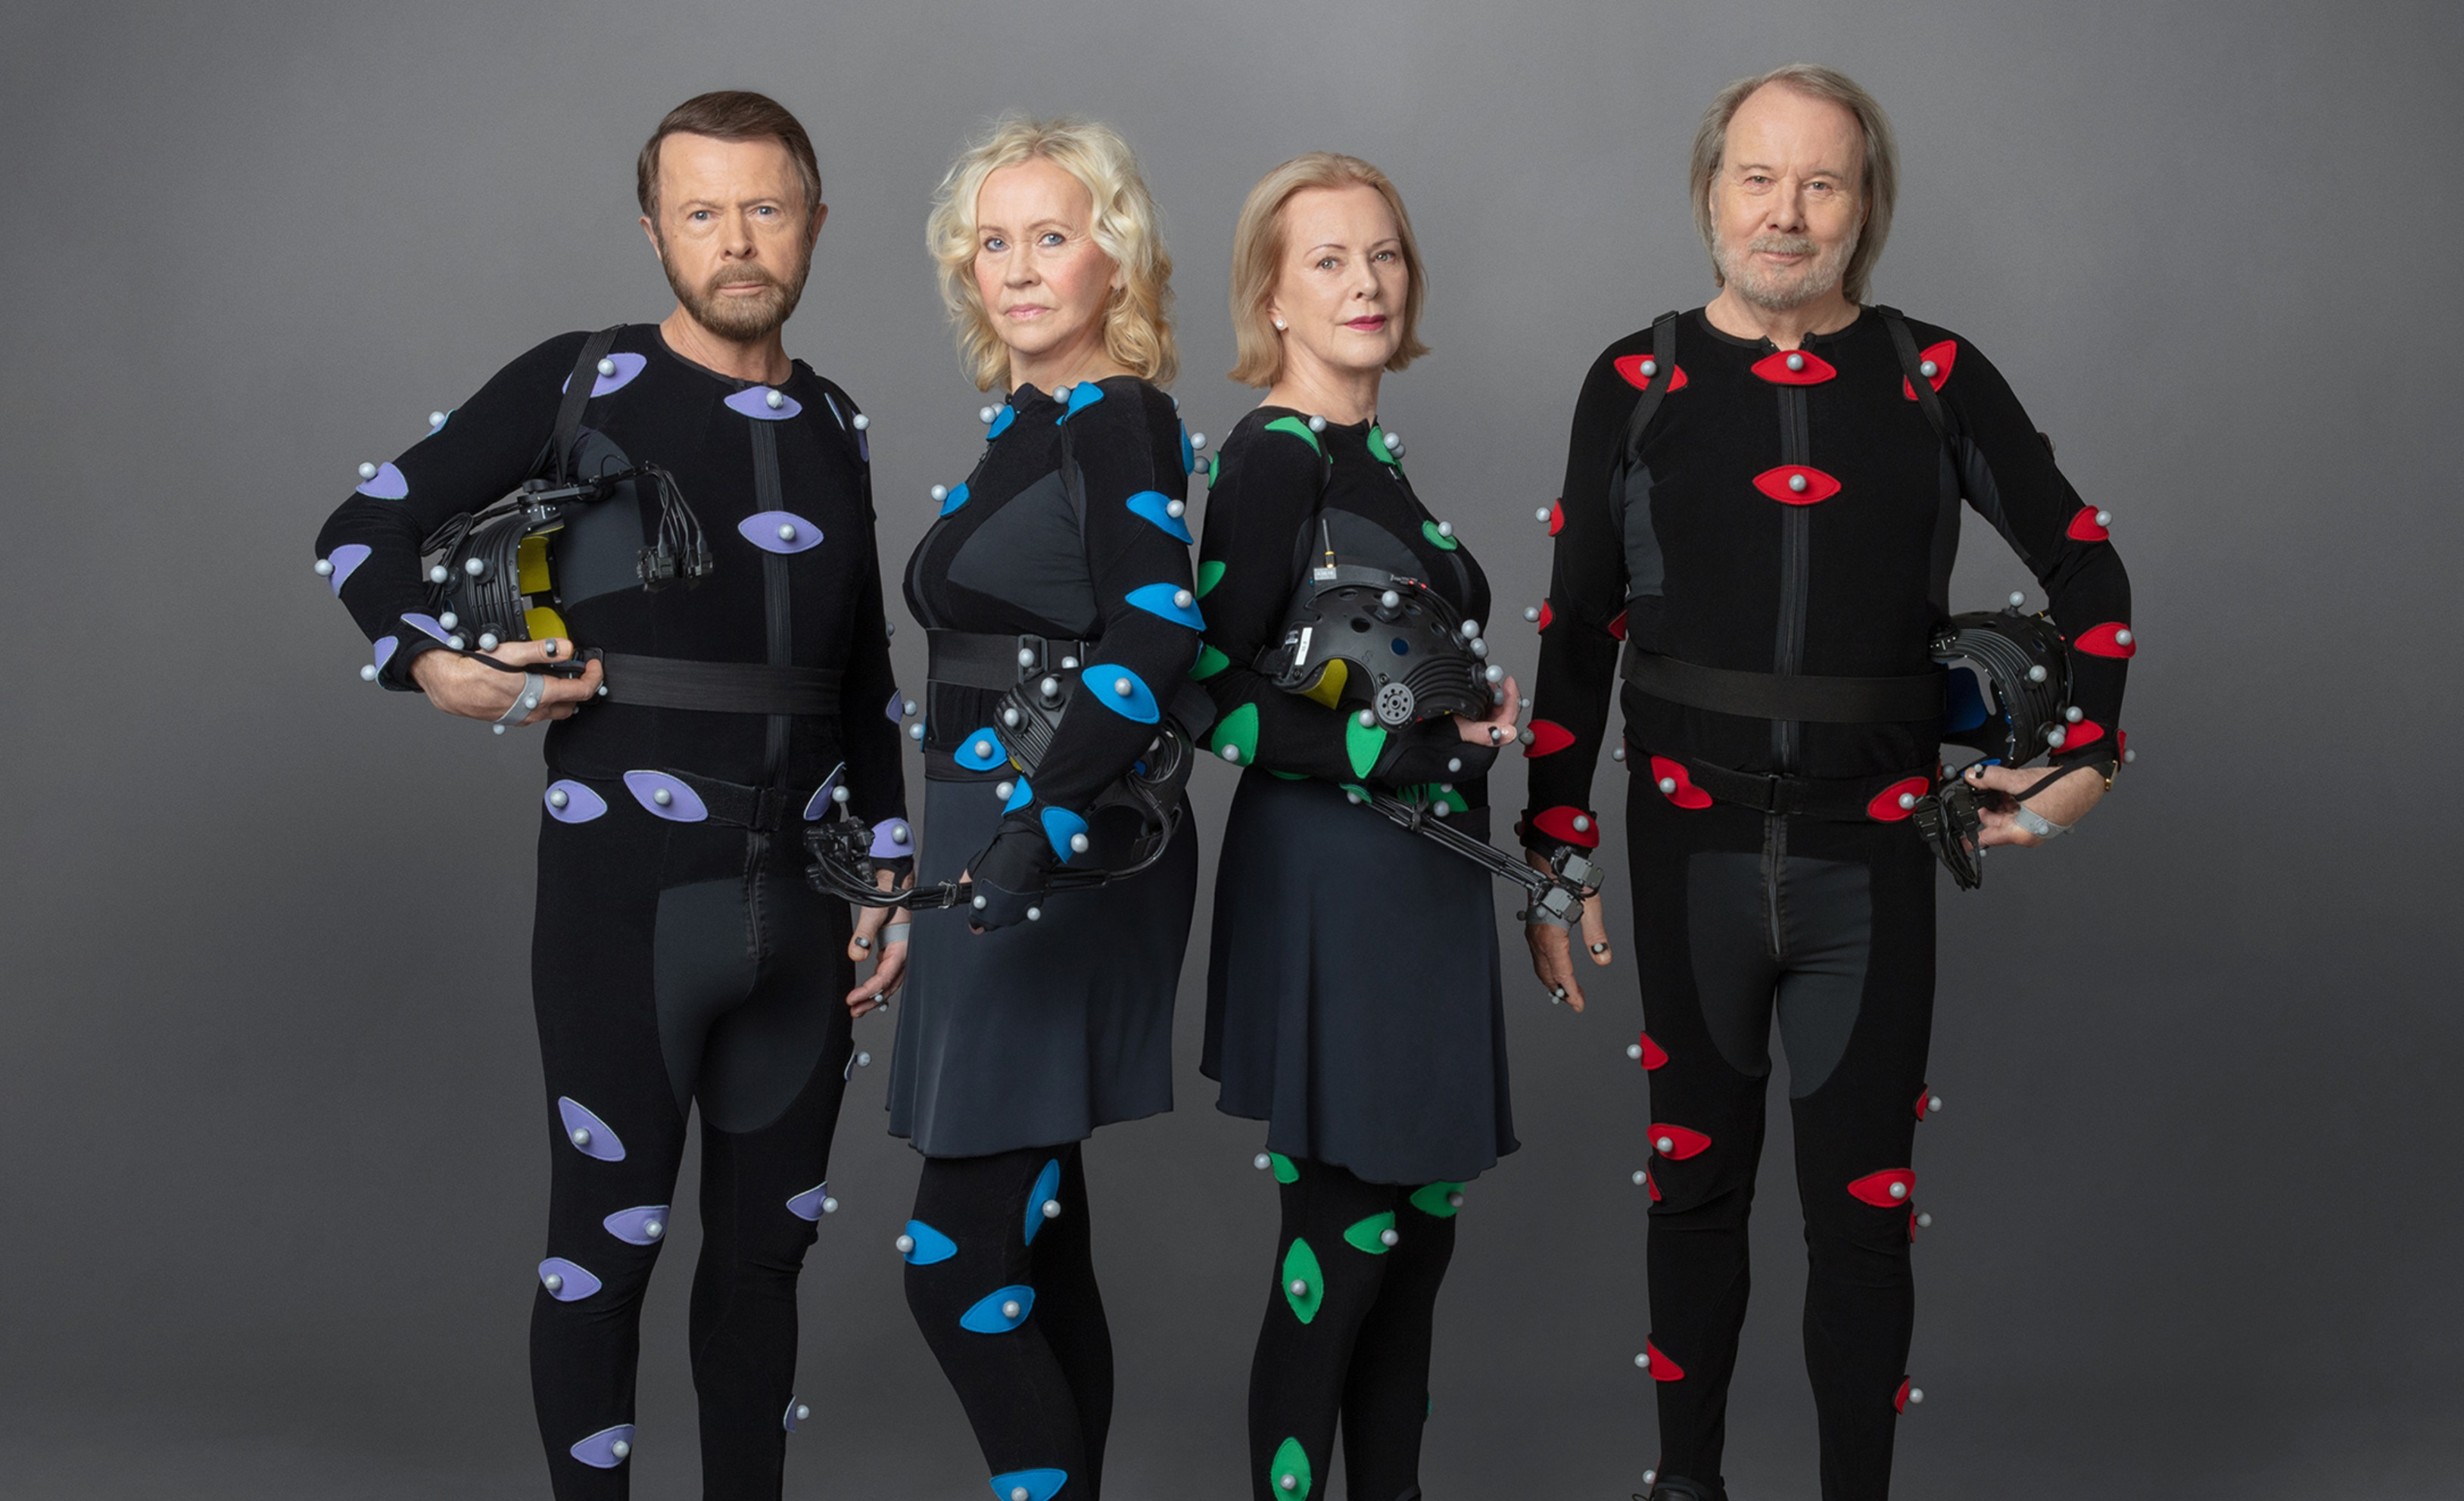 ABBA reunites after nearly 40 years to announce new album, digital concert